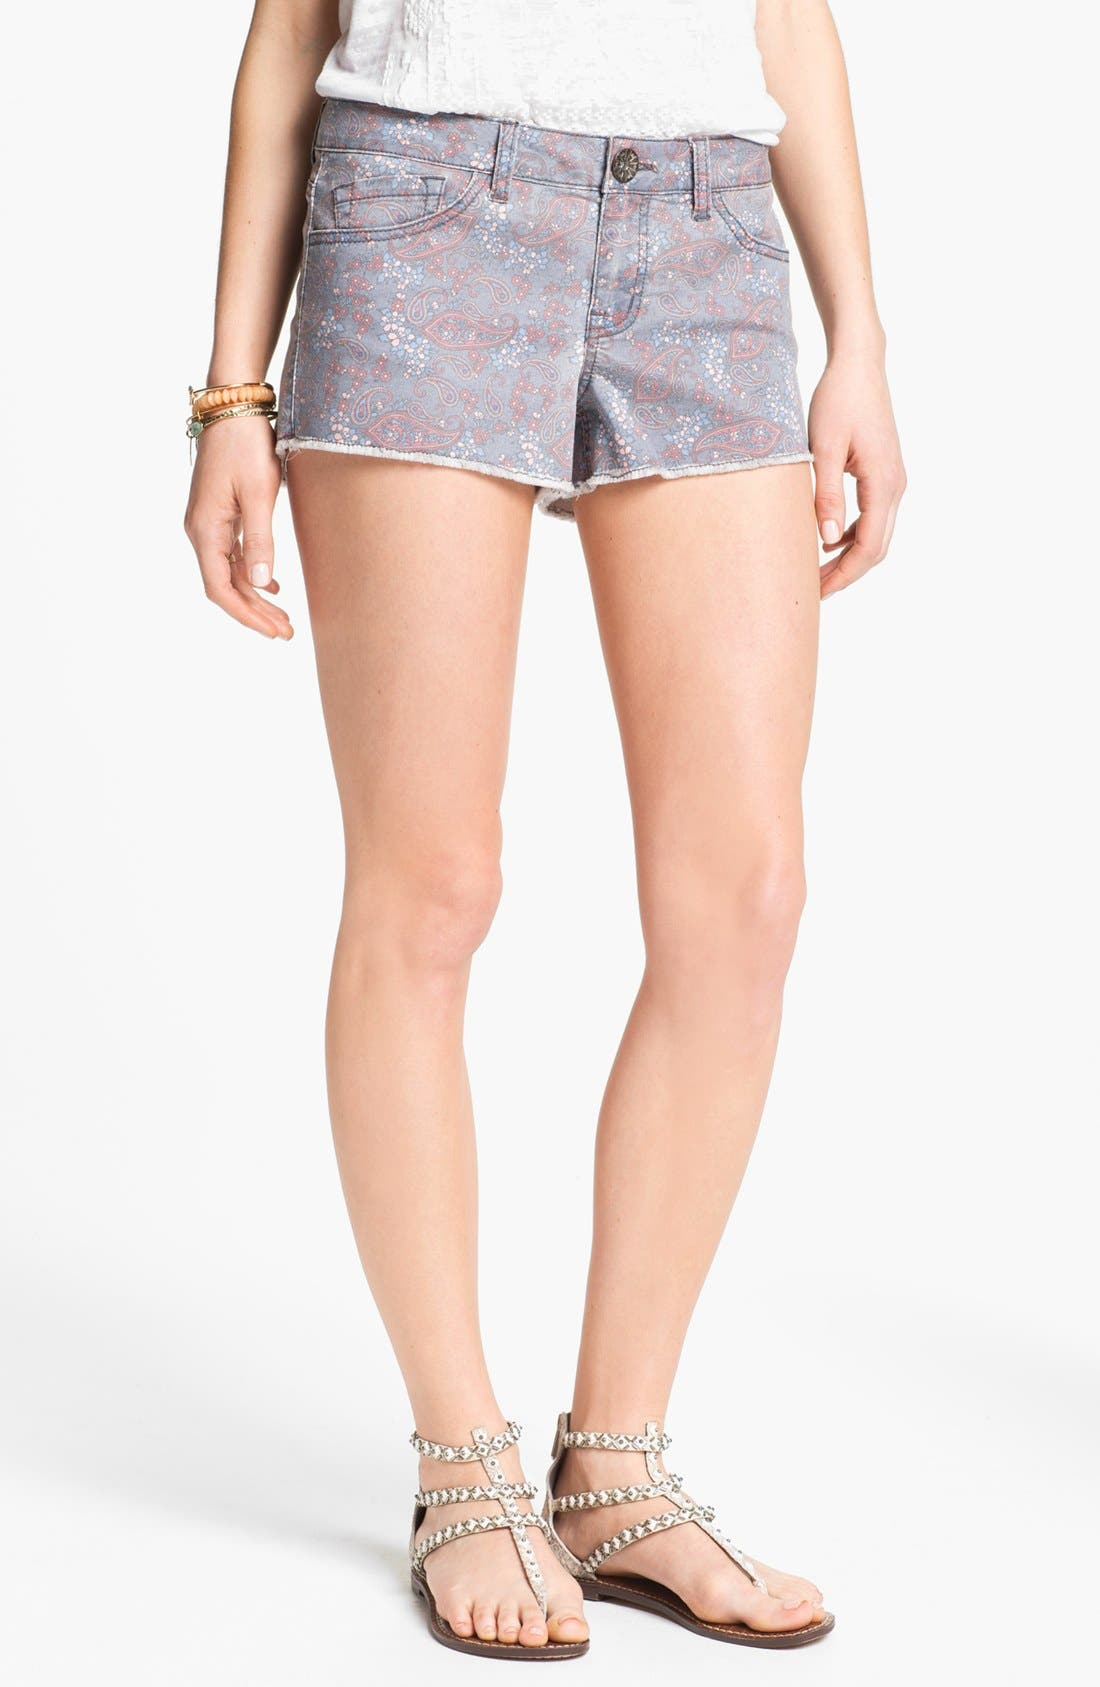 Alternate Image 1 Selected - Jolt Paisley Print Denim Cutoff Shorts (Juniors)